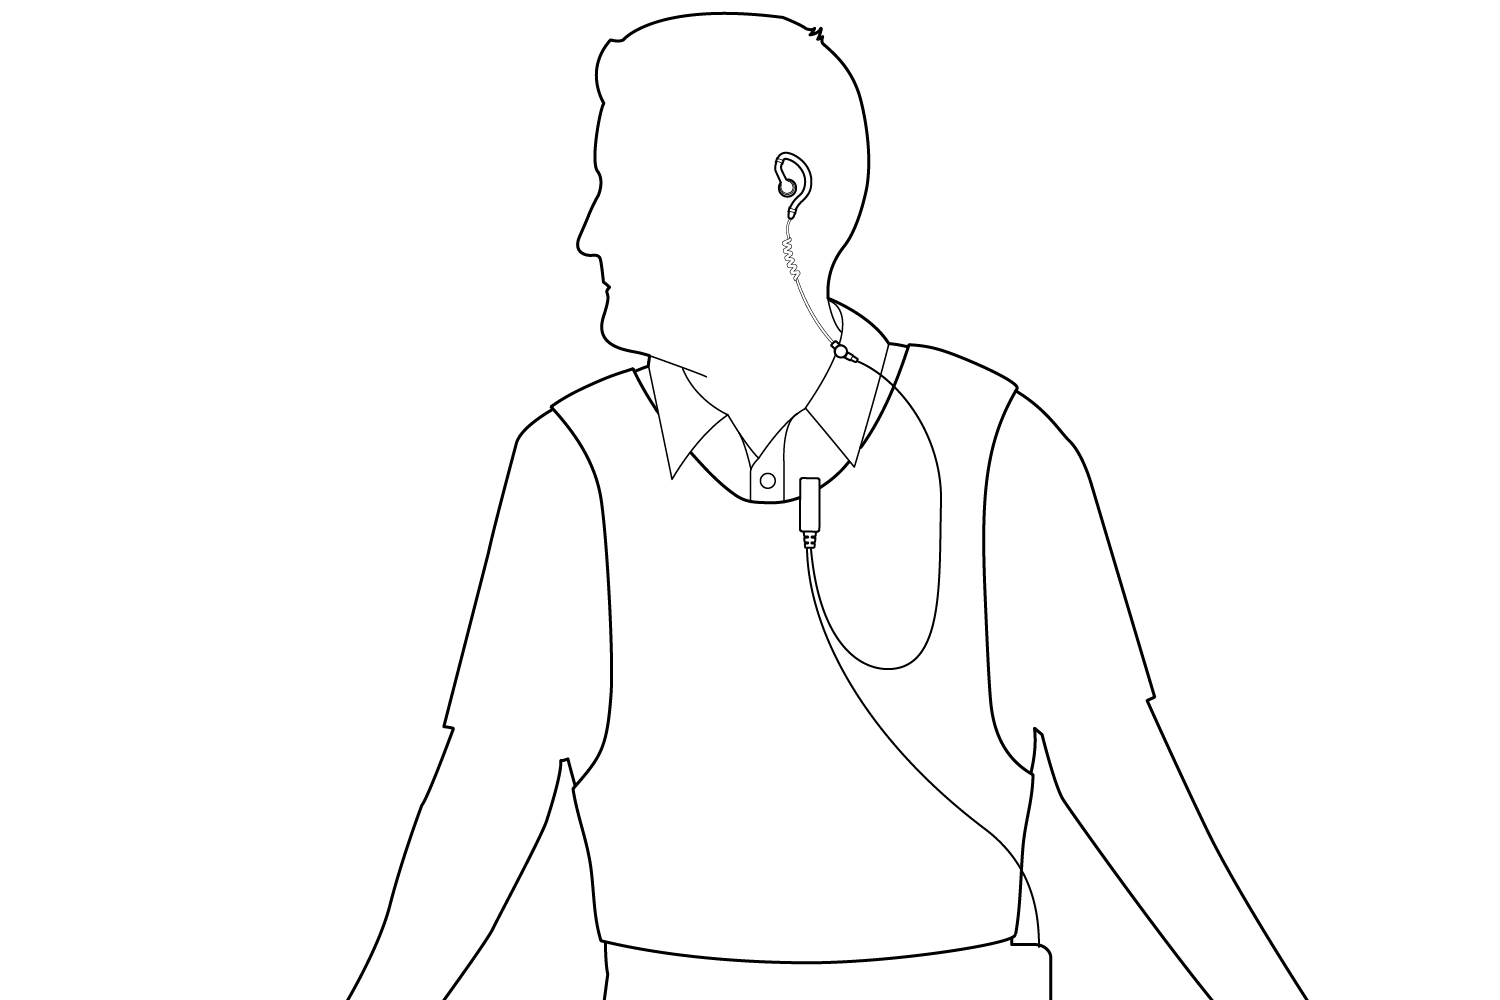 Wearing With Vest Diagram